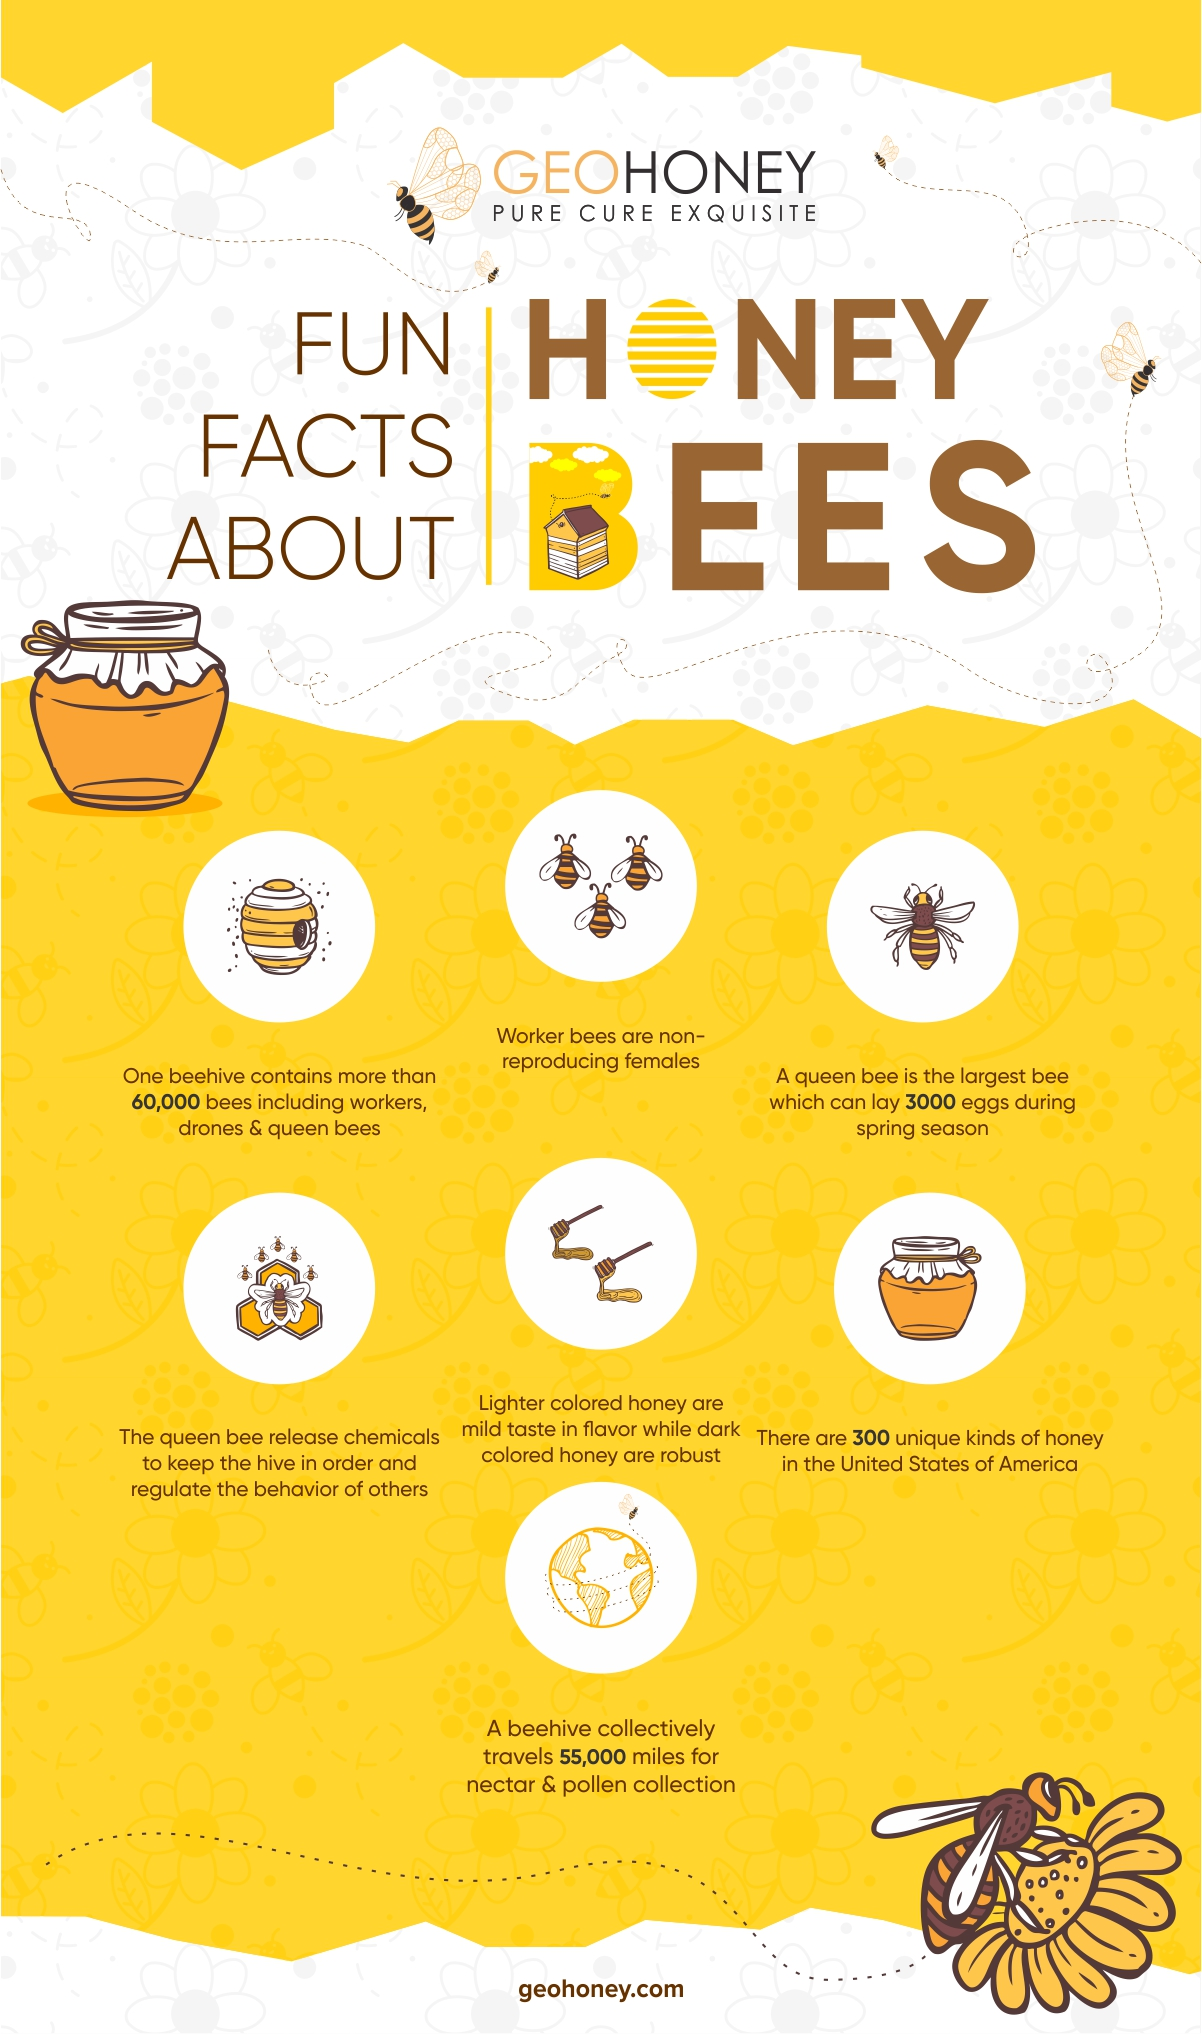 Facts about honey bees - Geohoney